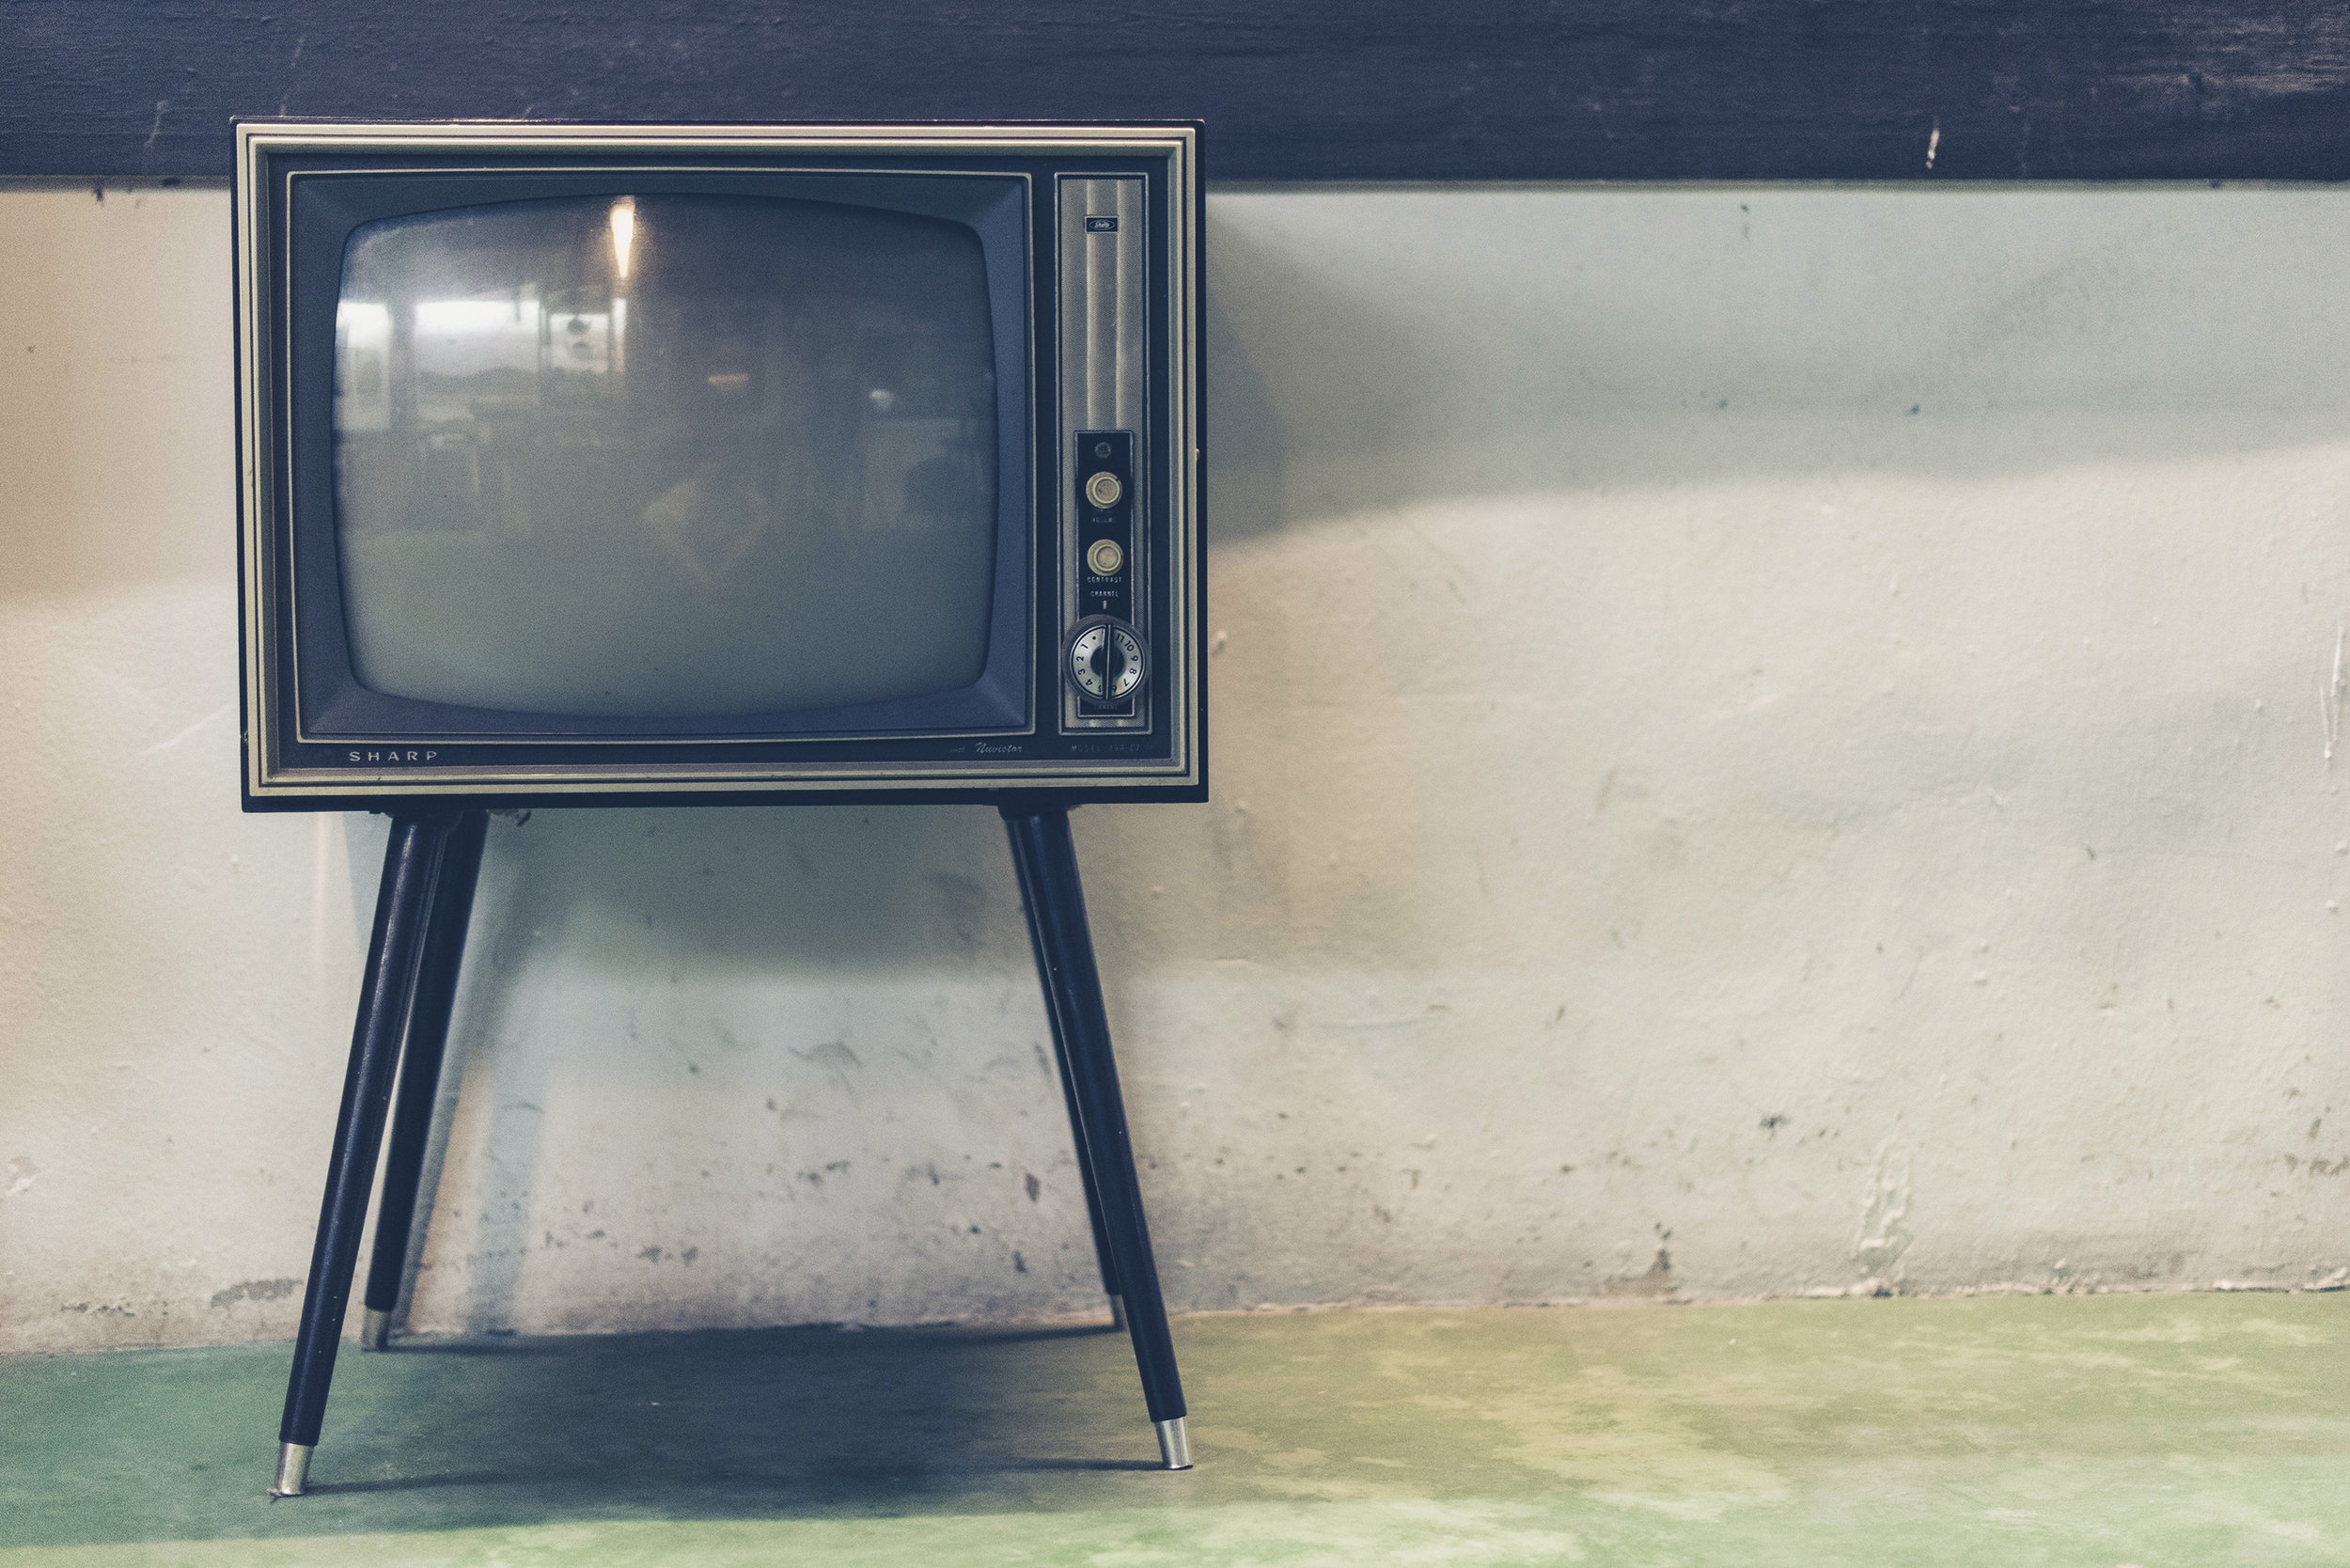 TV and belly fat reduction